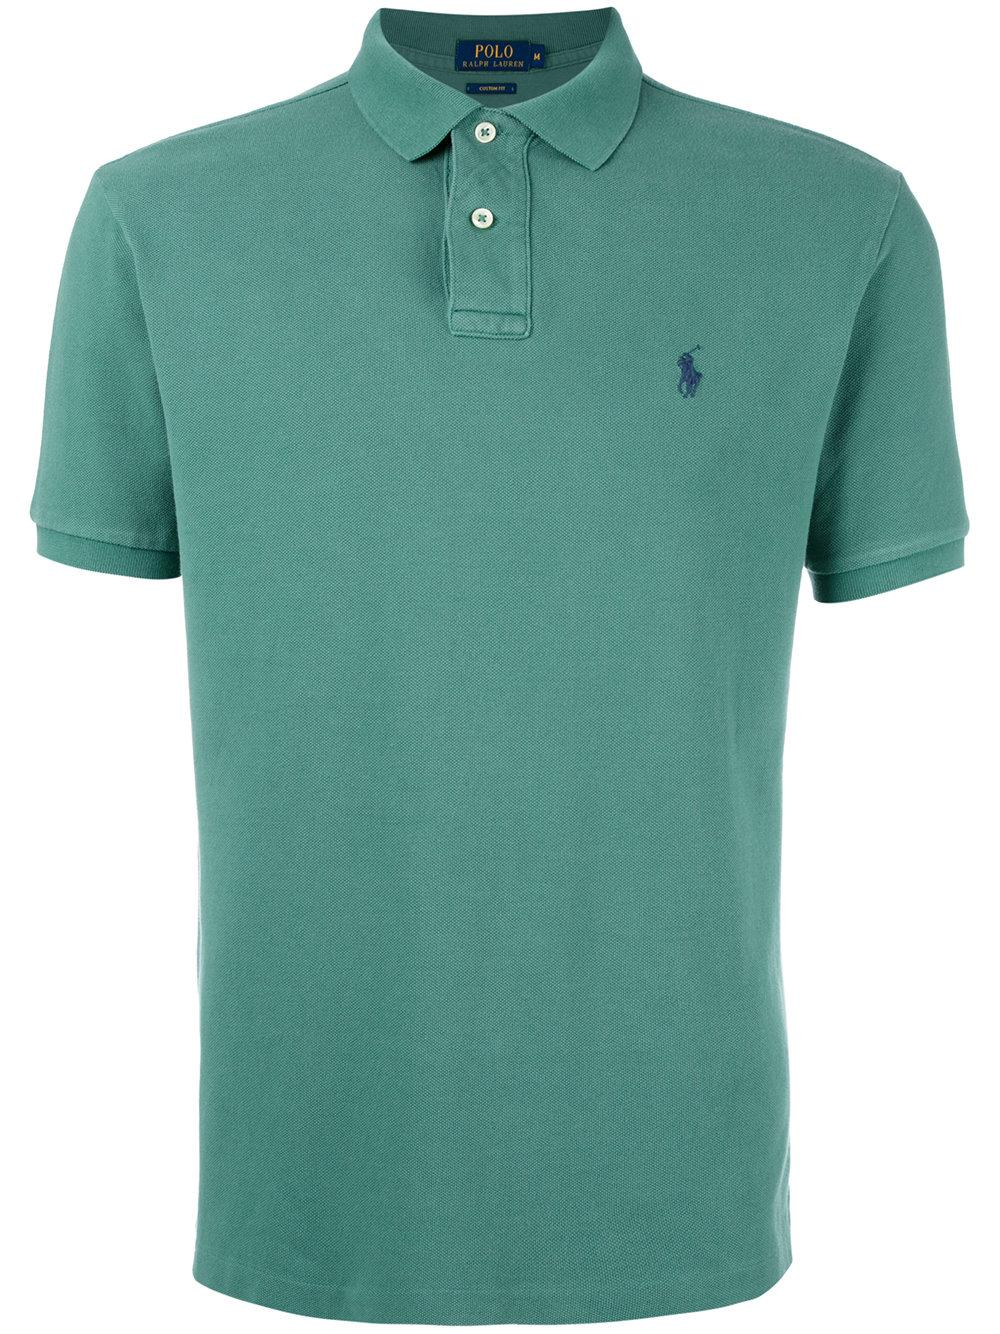 Polo ralph lauren chest embroidery polo shirt men for Polo shirts with embroidery